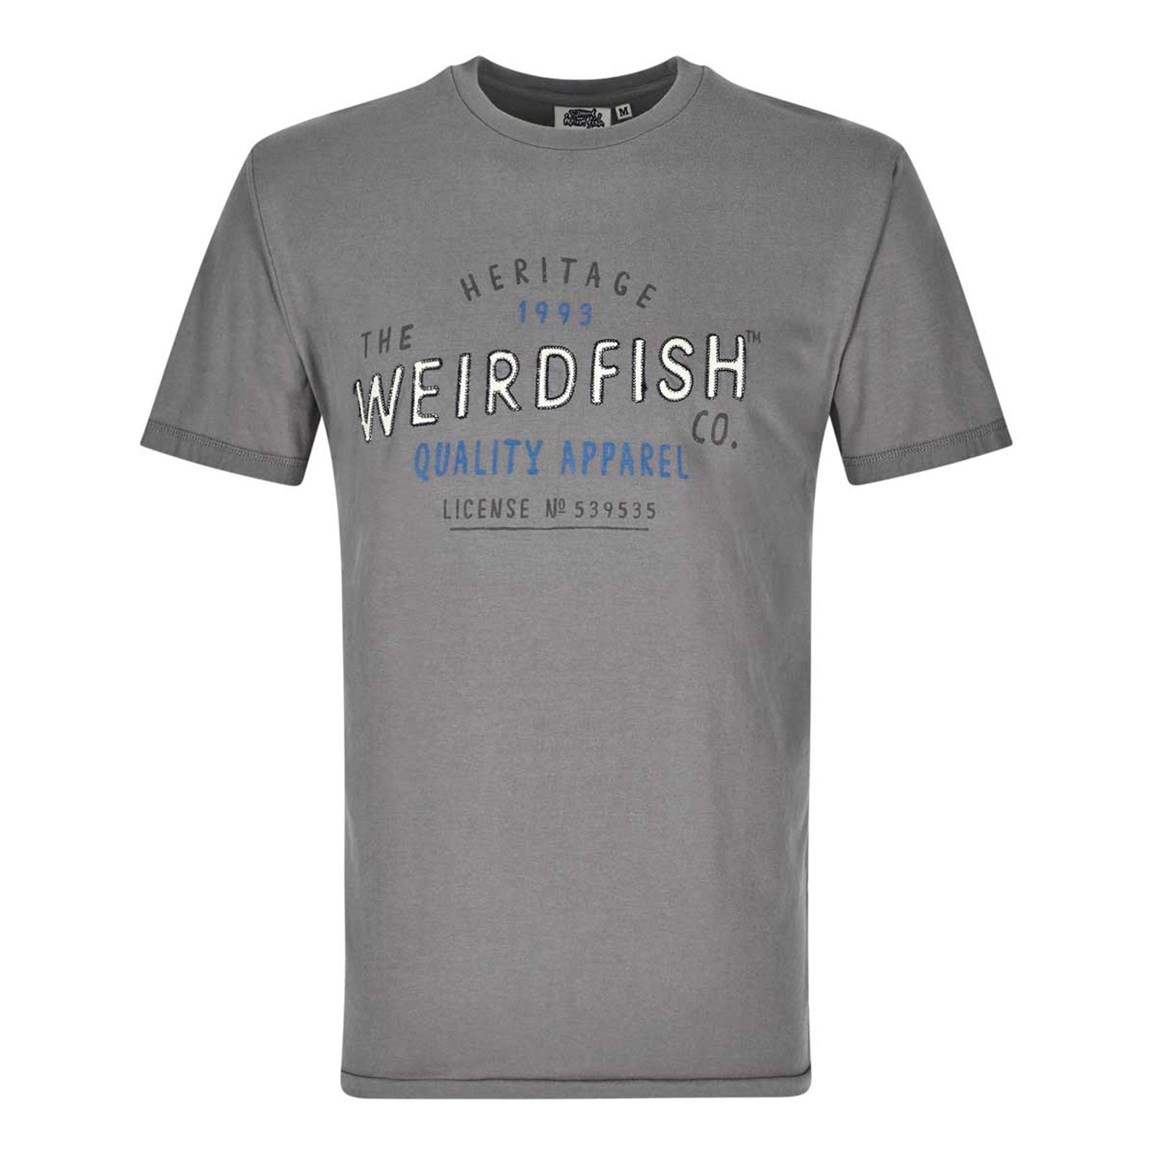 Weird Fish Heritage Applique & Graphic Print Cotton T-Shirt Grey